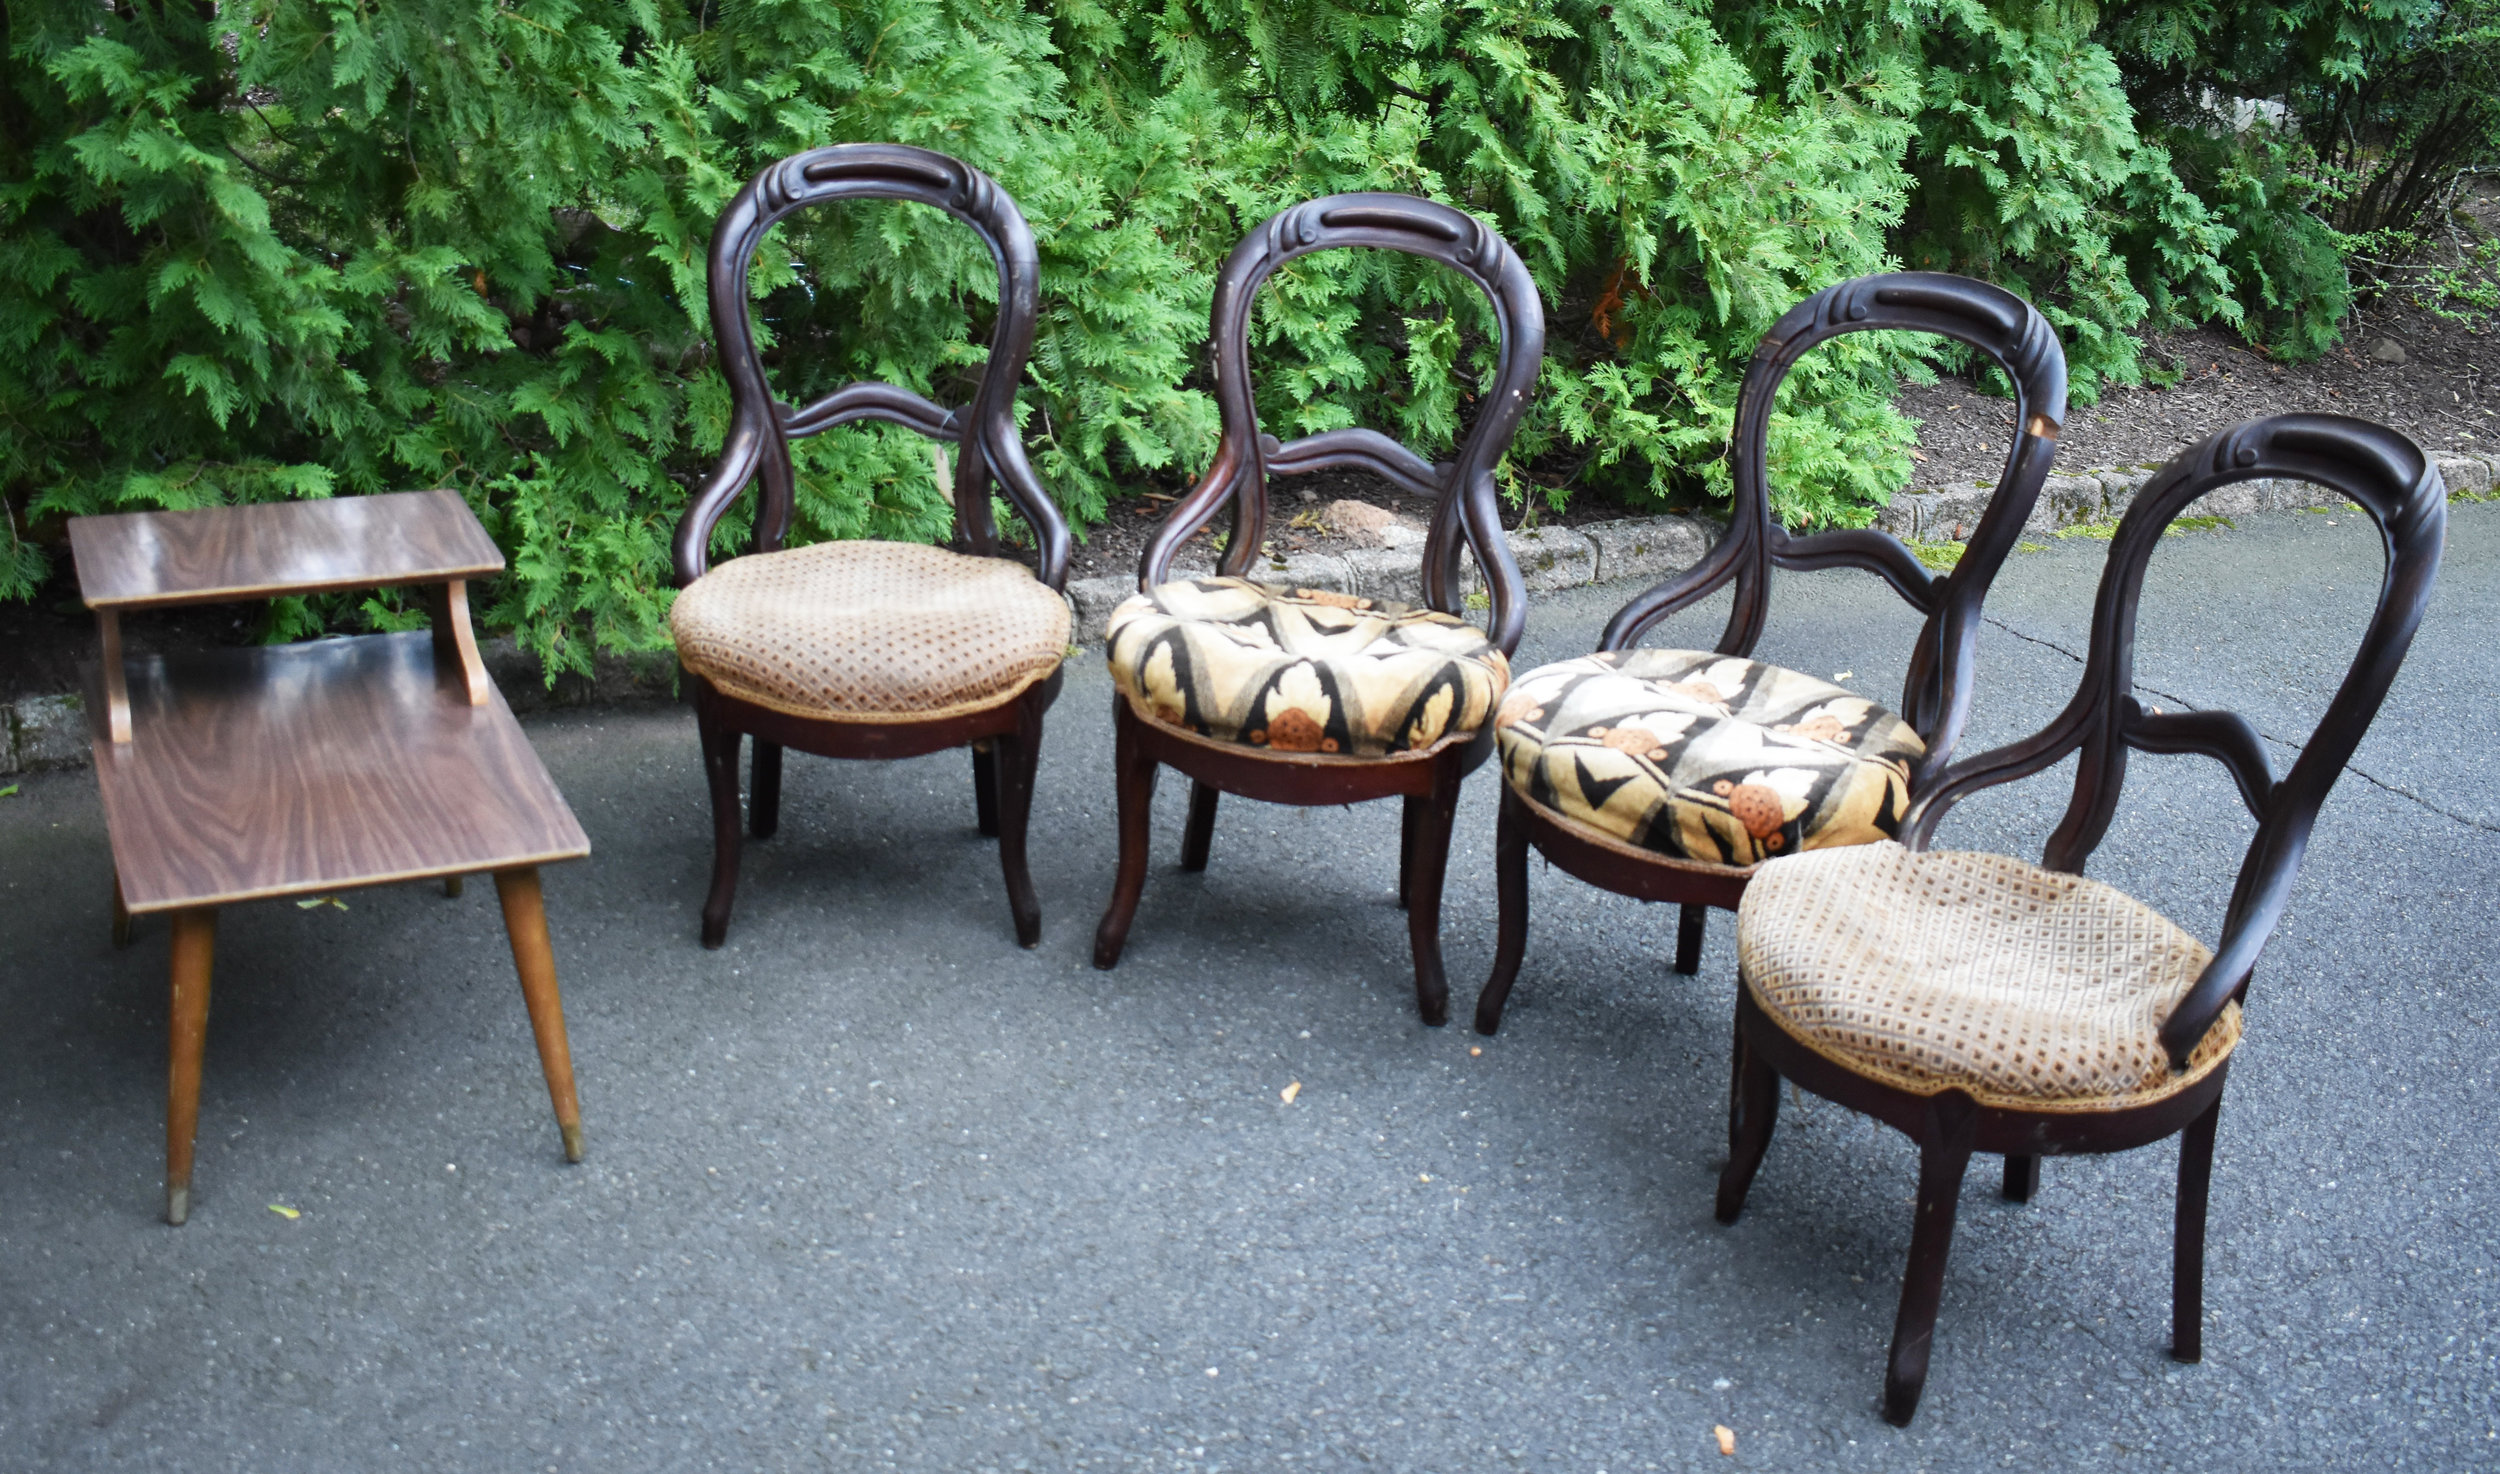 More new finds from Brimfield antiques market (July 2017)